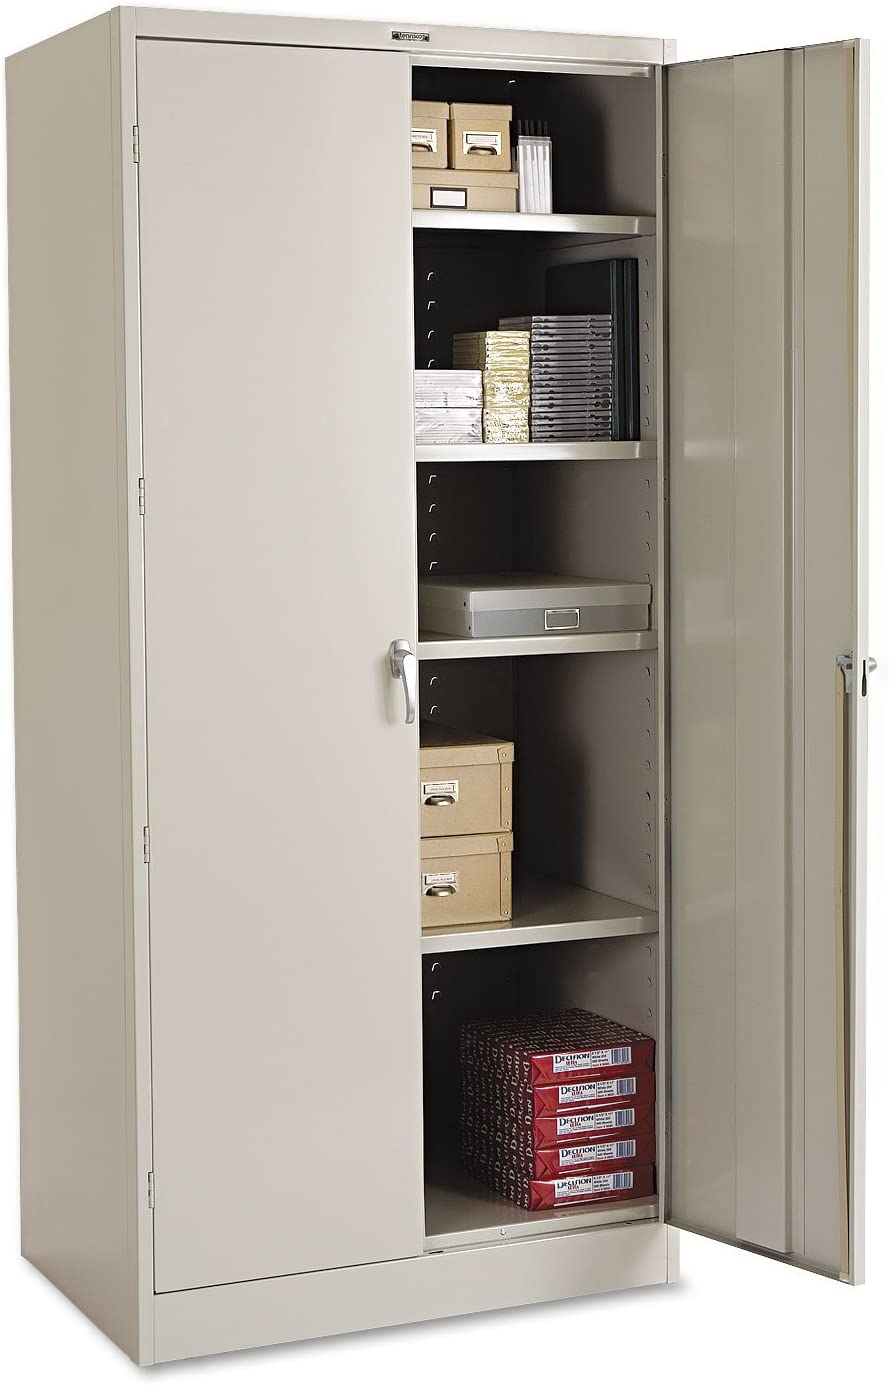 Tennsco 2470LGY 78-Inch Chicago Mall High Price reduction Deluxe Cabinet 24d Li 78h x 36w